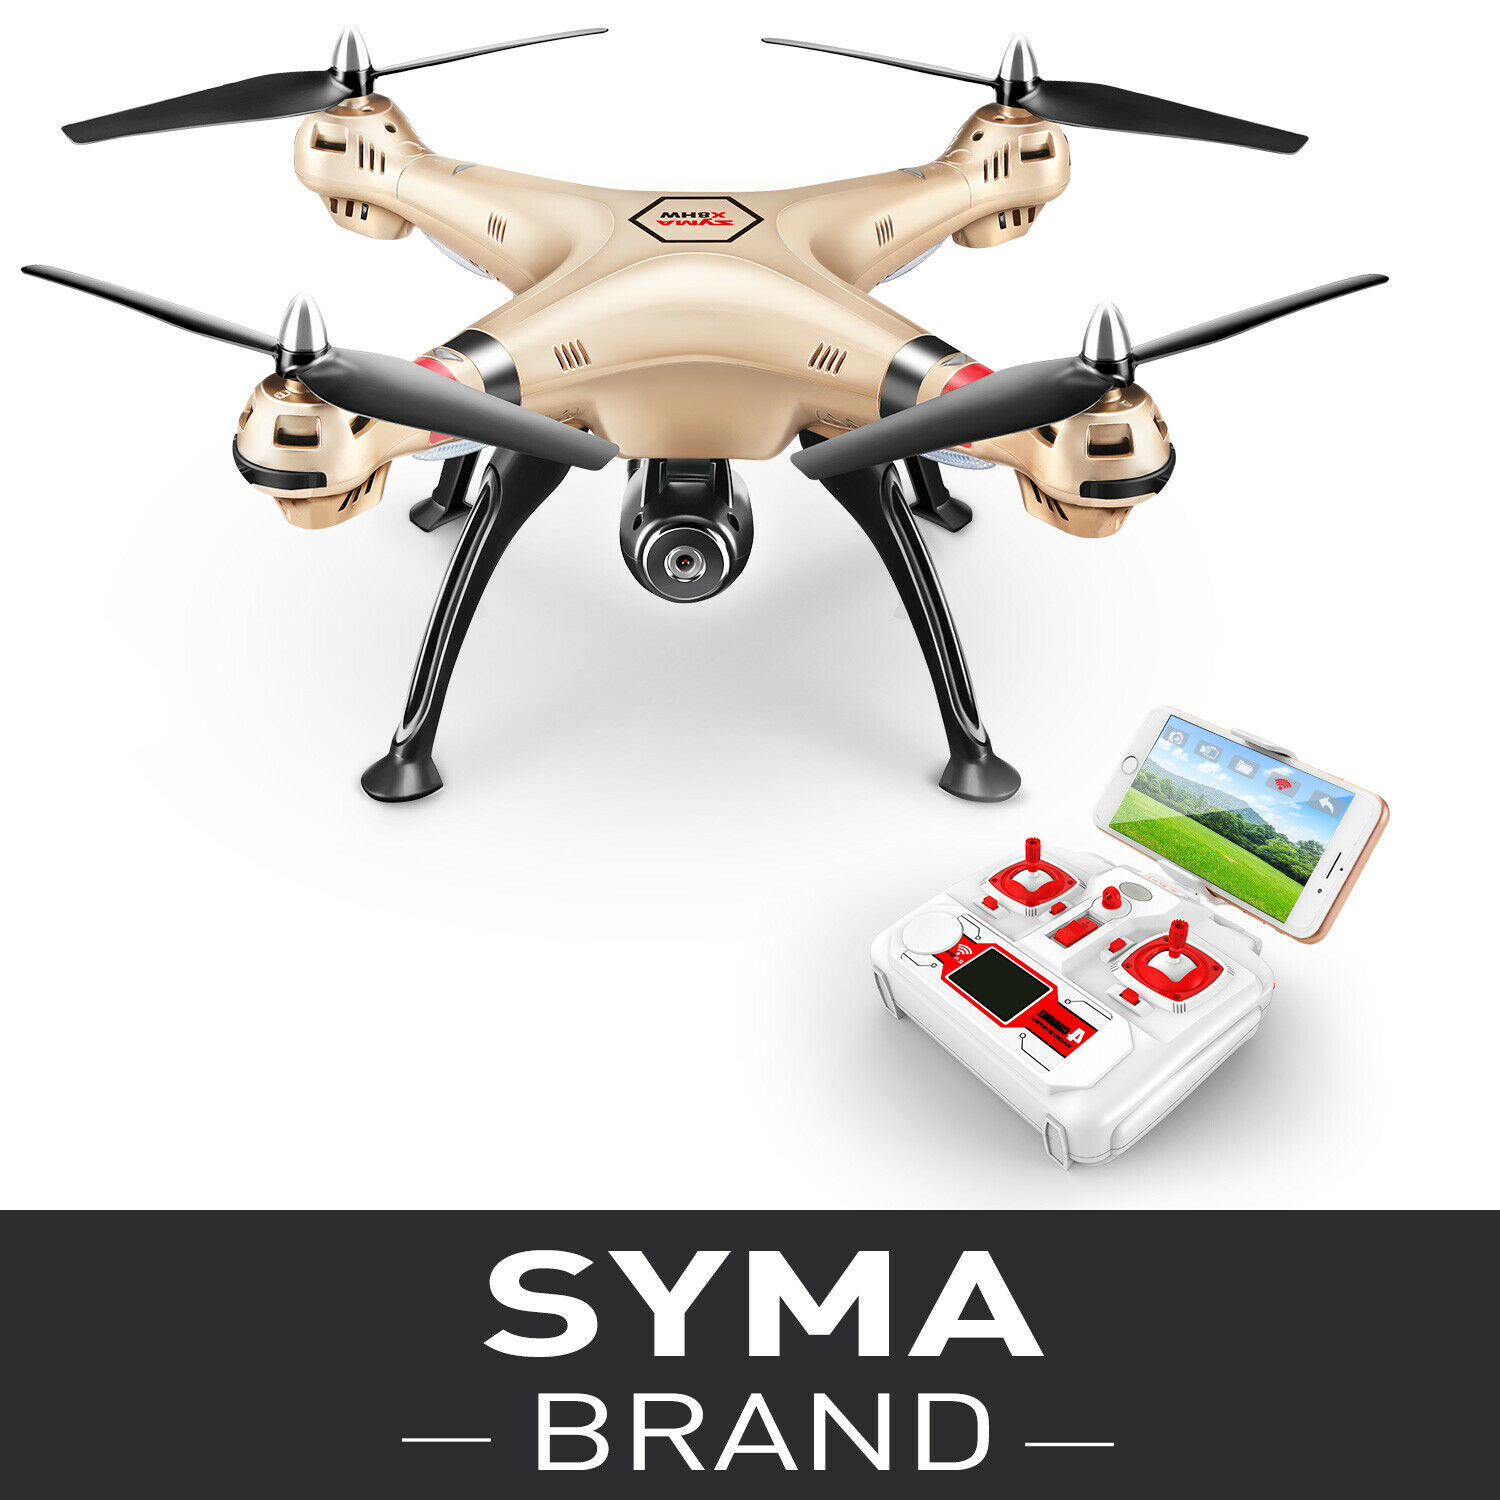 SYMA X8HW RC Quadcopter Drone FPV WIFI 720P 4G Camera Altitude Hold Helicopter